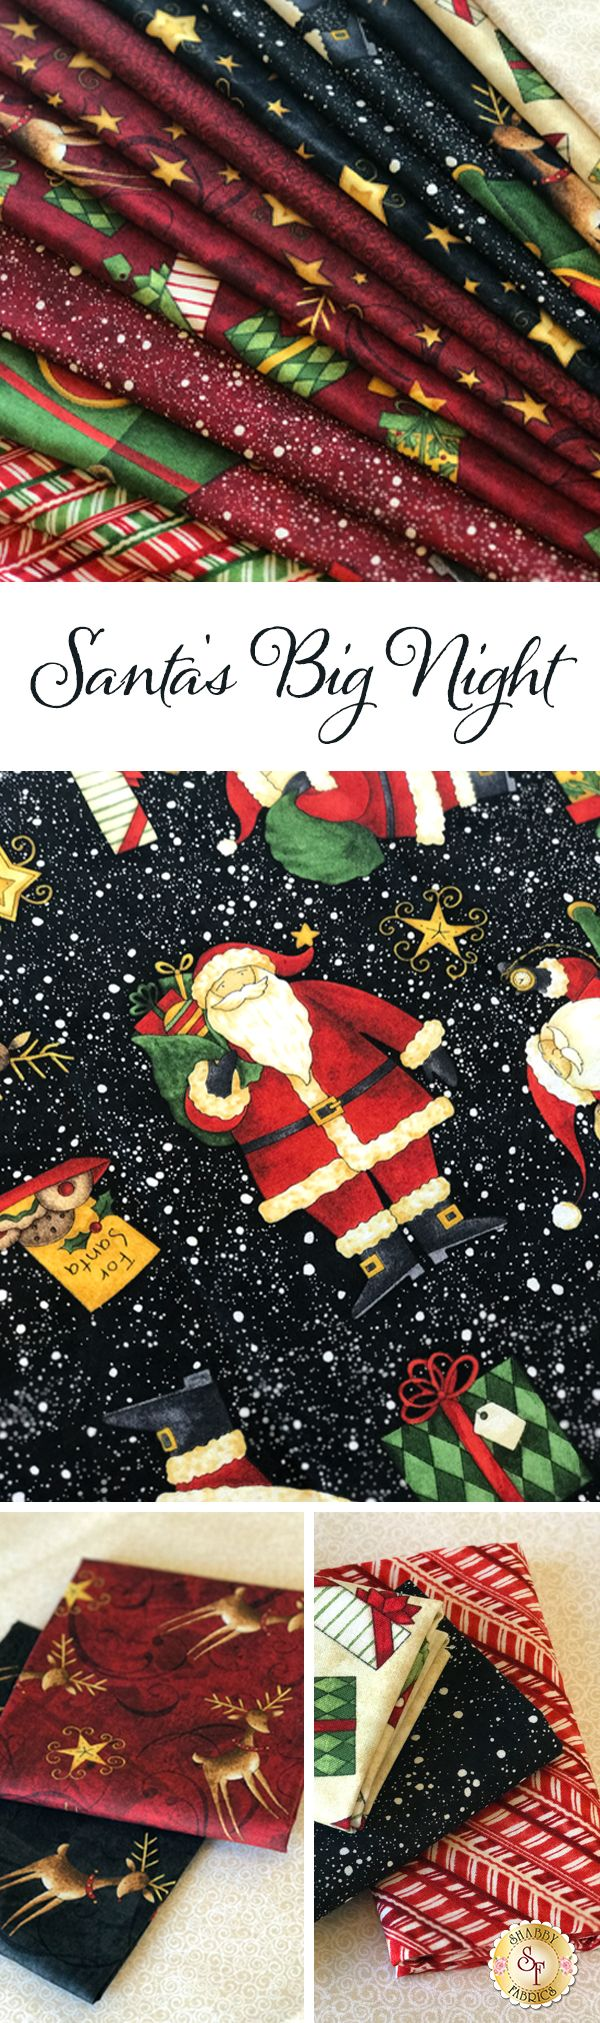 Santa's Big Night by Debbie Mumm for Wilmington Prints is a festive holiday fabric collection available at Shabby Fabrics